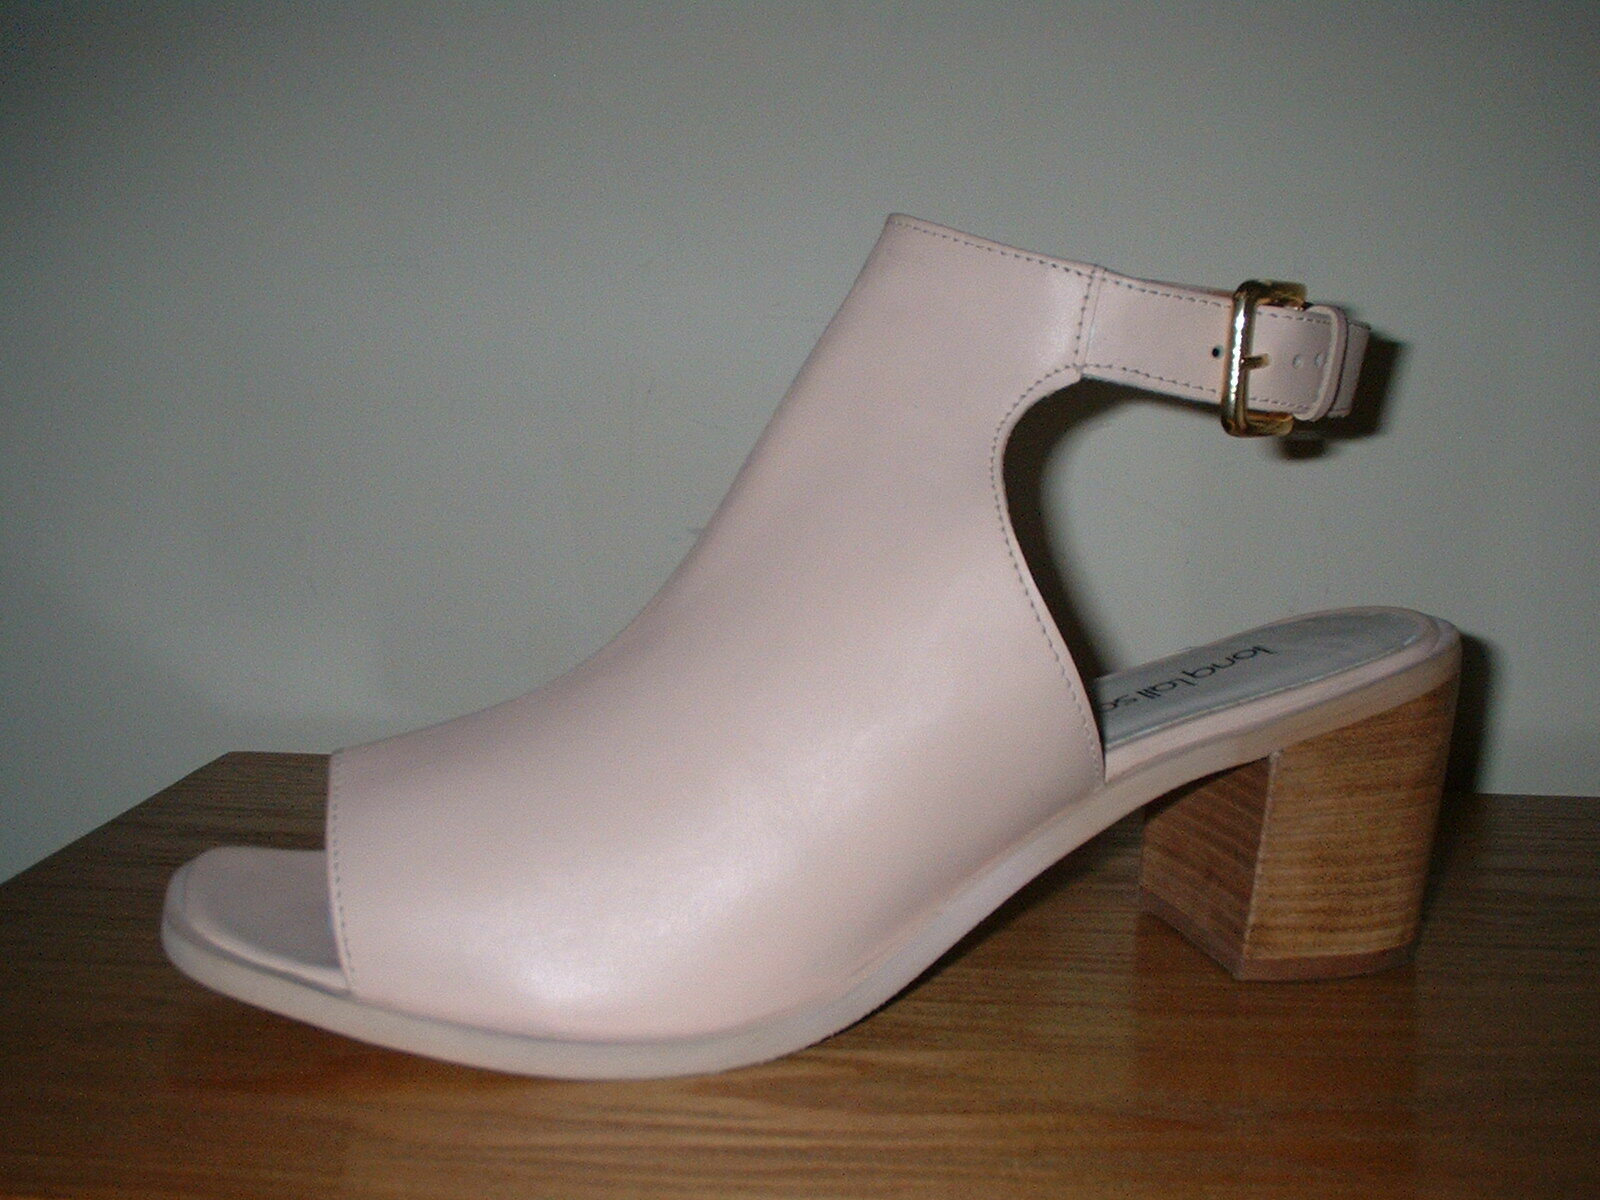 NUDE PALE PINK LEATHER PEEP TOE  ANKLE CUFF BUCKLE BLOCK HEELS  8 42  80.00